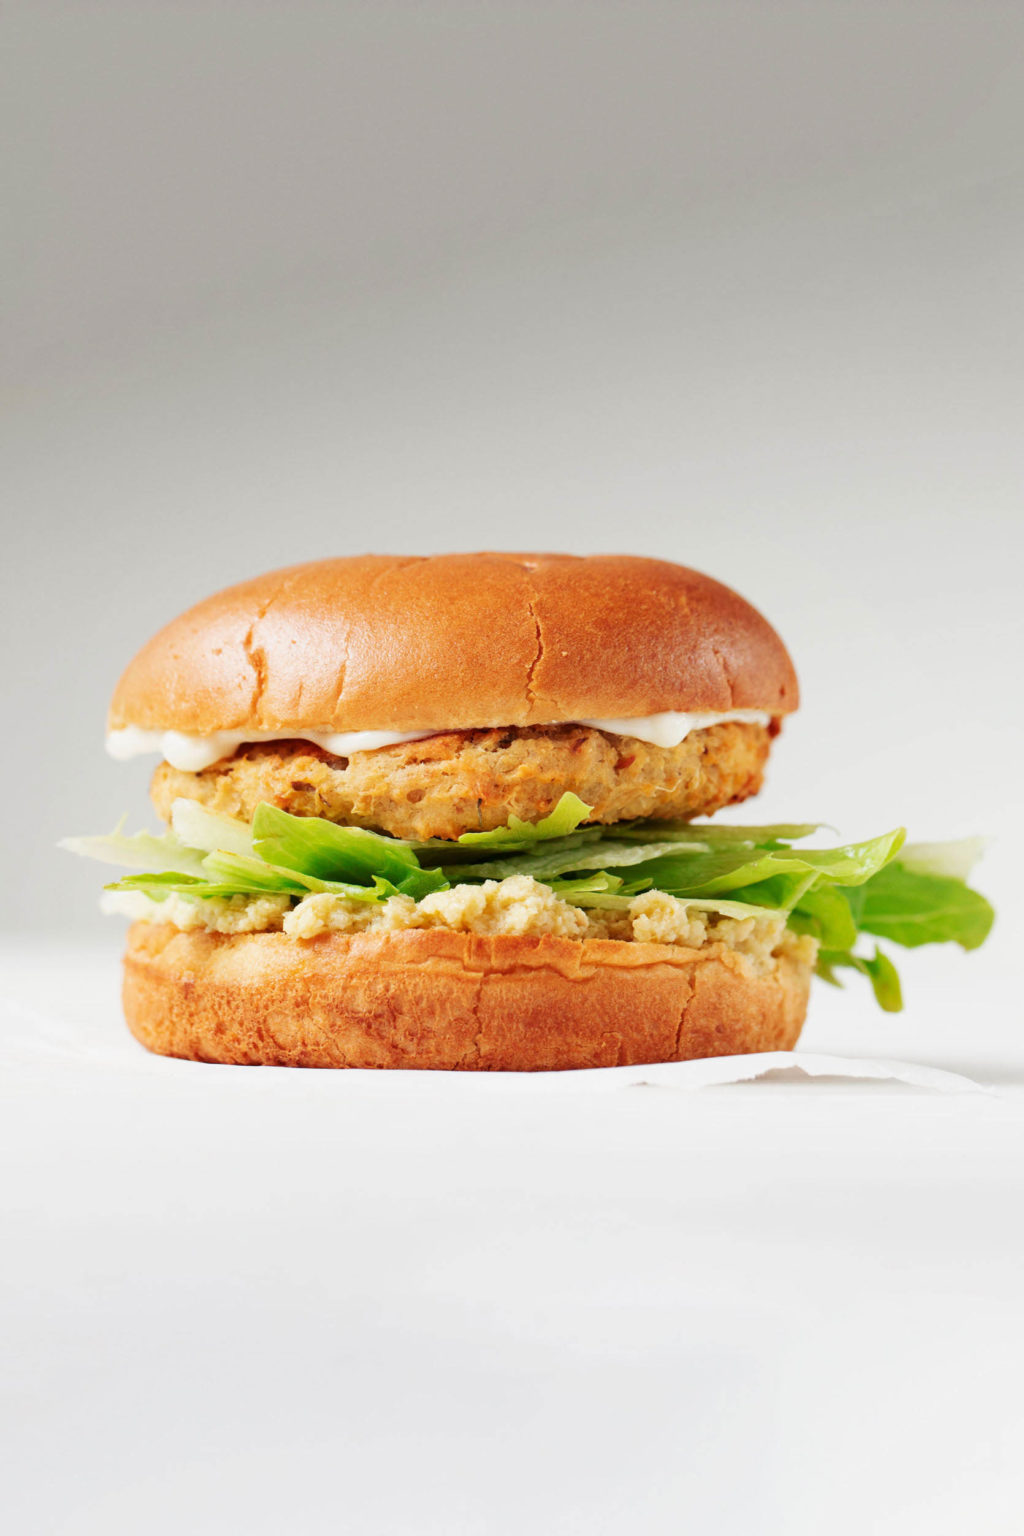 A sideways photograph of a vegetable burger on a bun, with lettuce and other toppings. It's on a white surface and photographed against a gray backdrop.